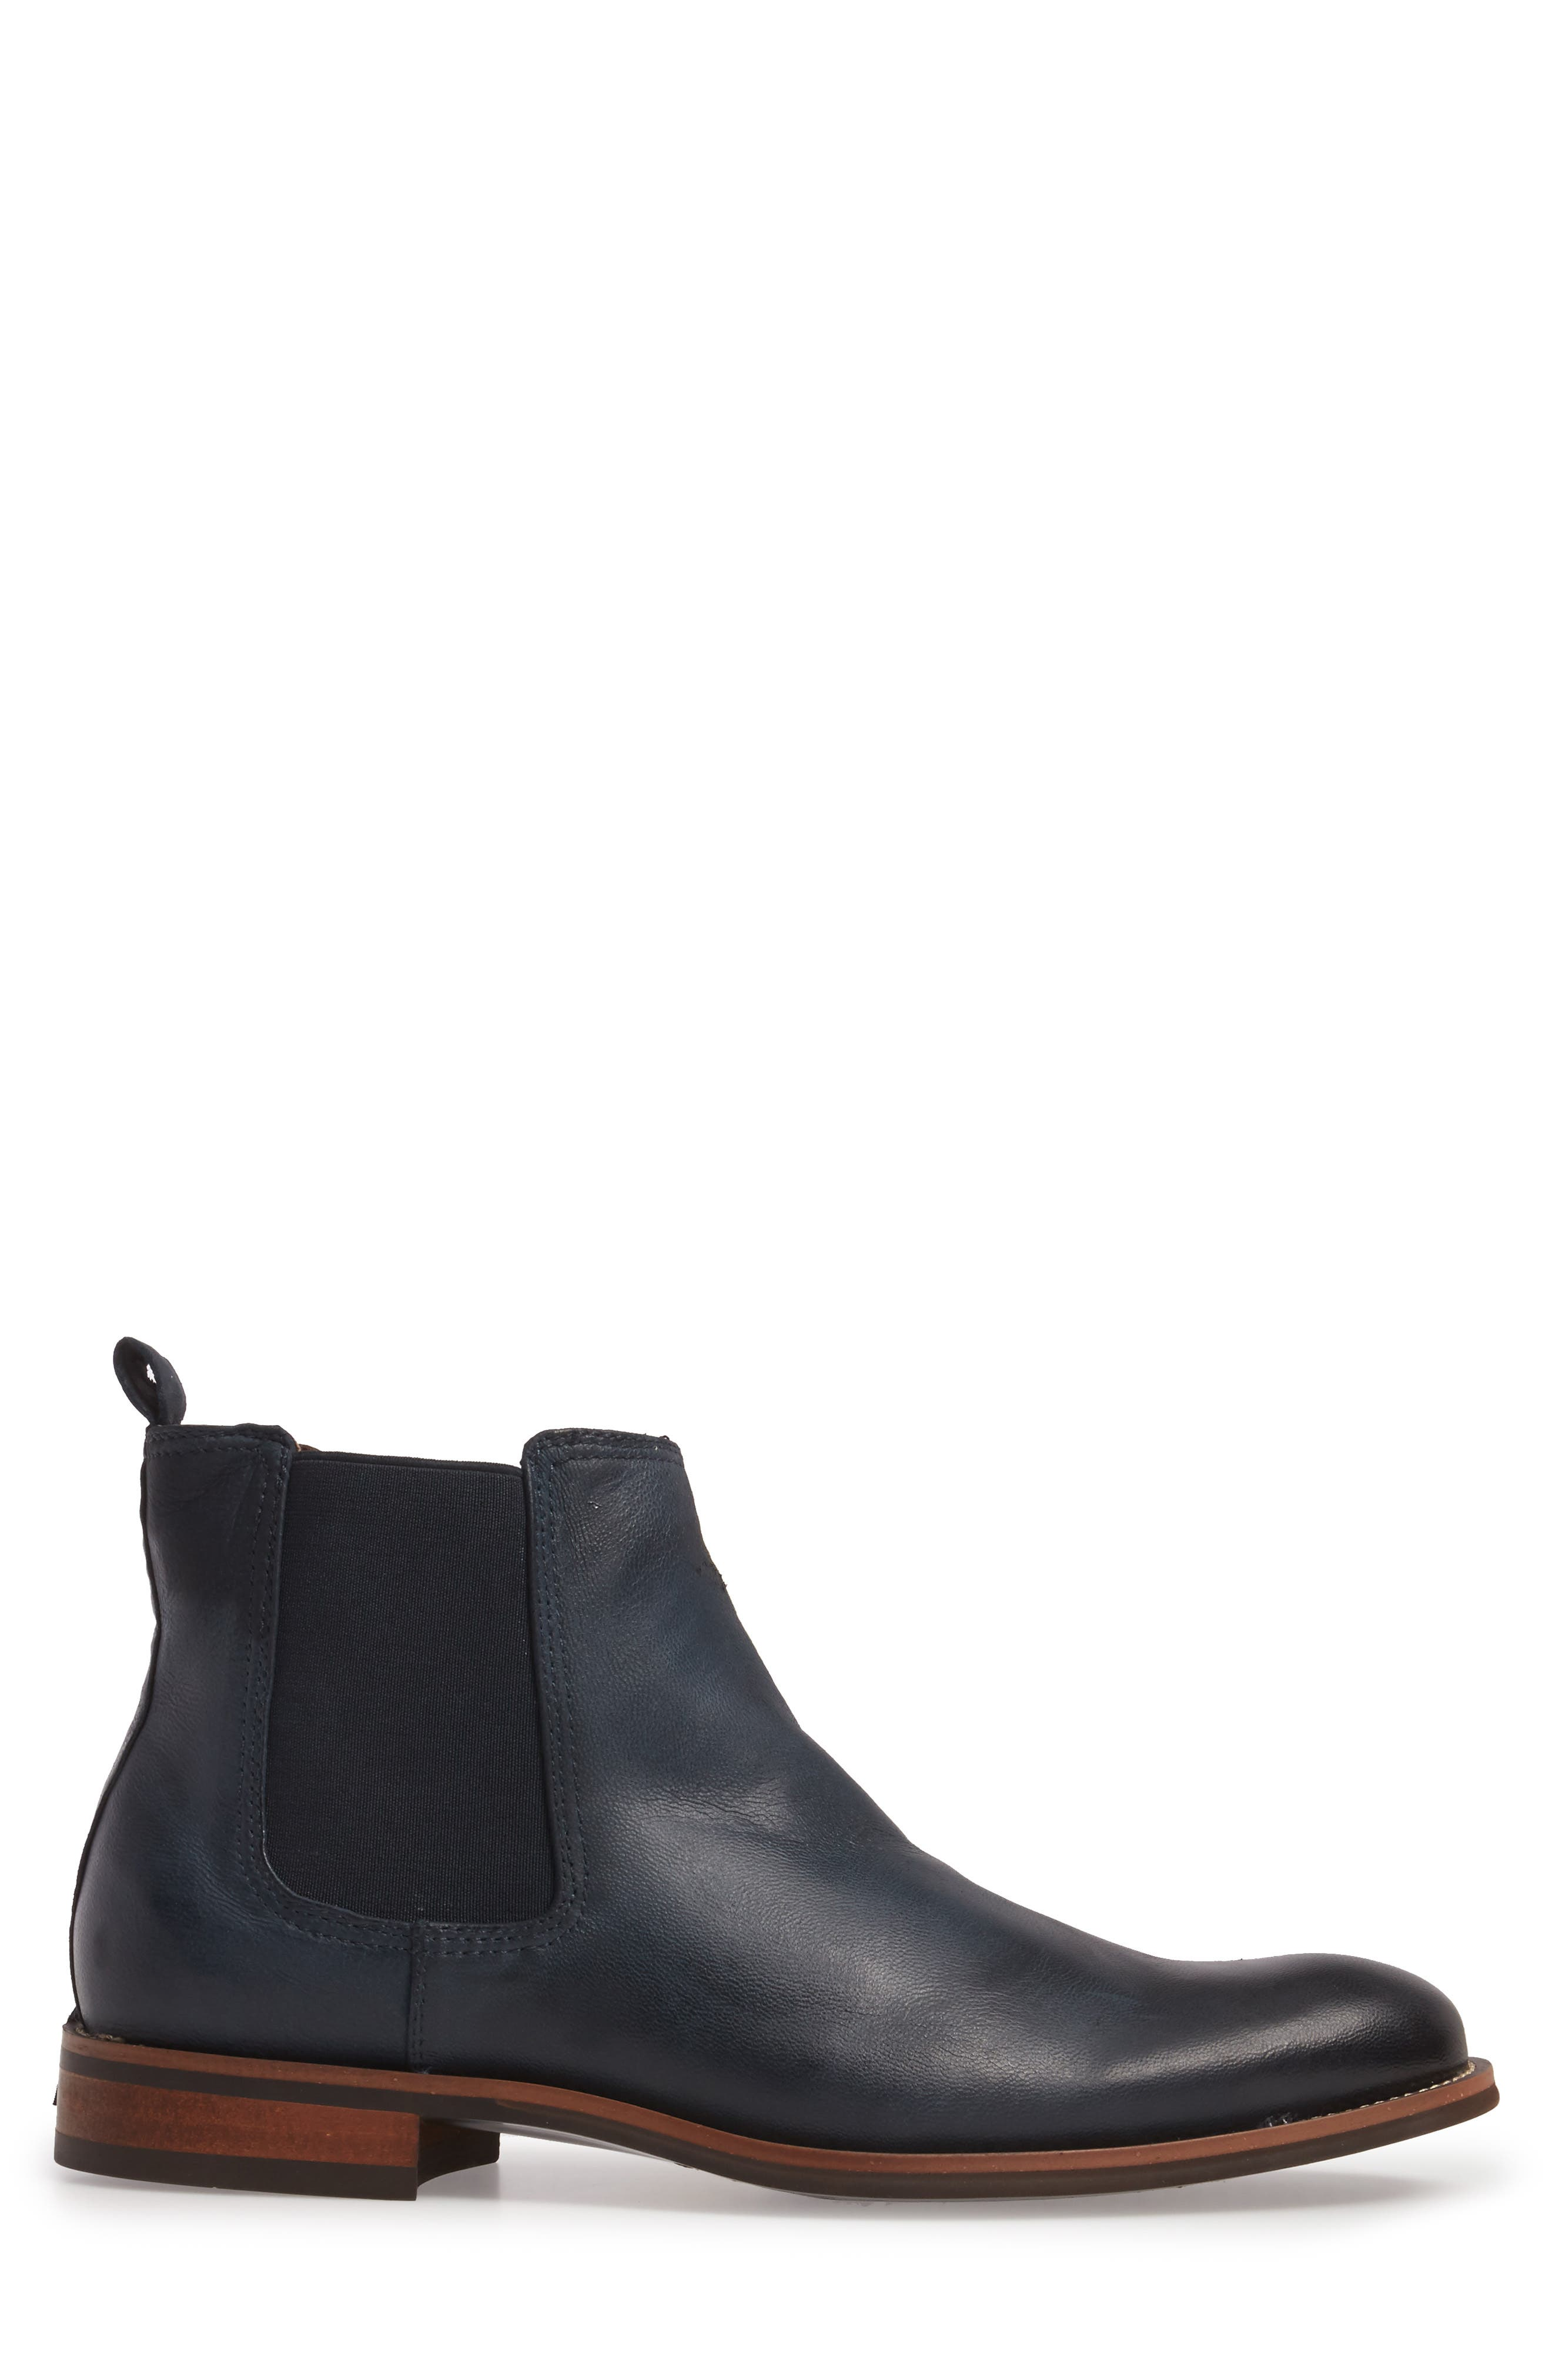 Lawson Chelsea Boot,                             Alternate thumbnail 3, color,                             Navy